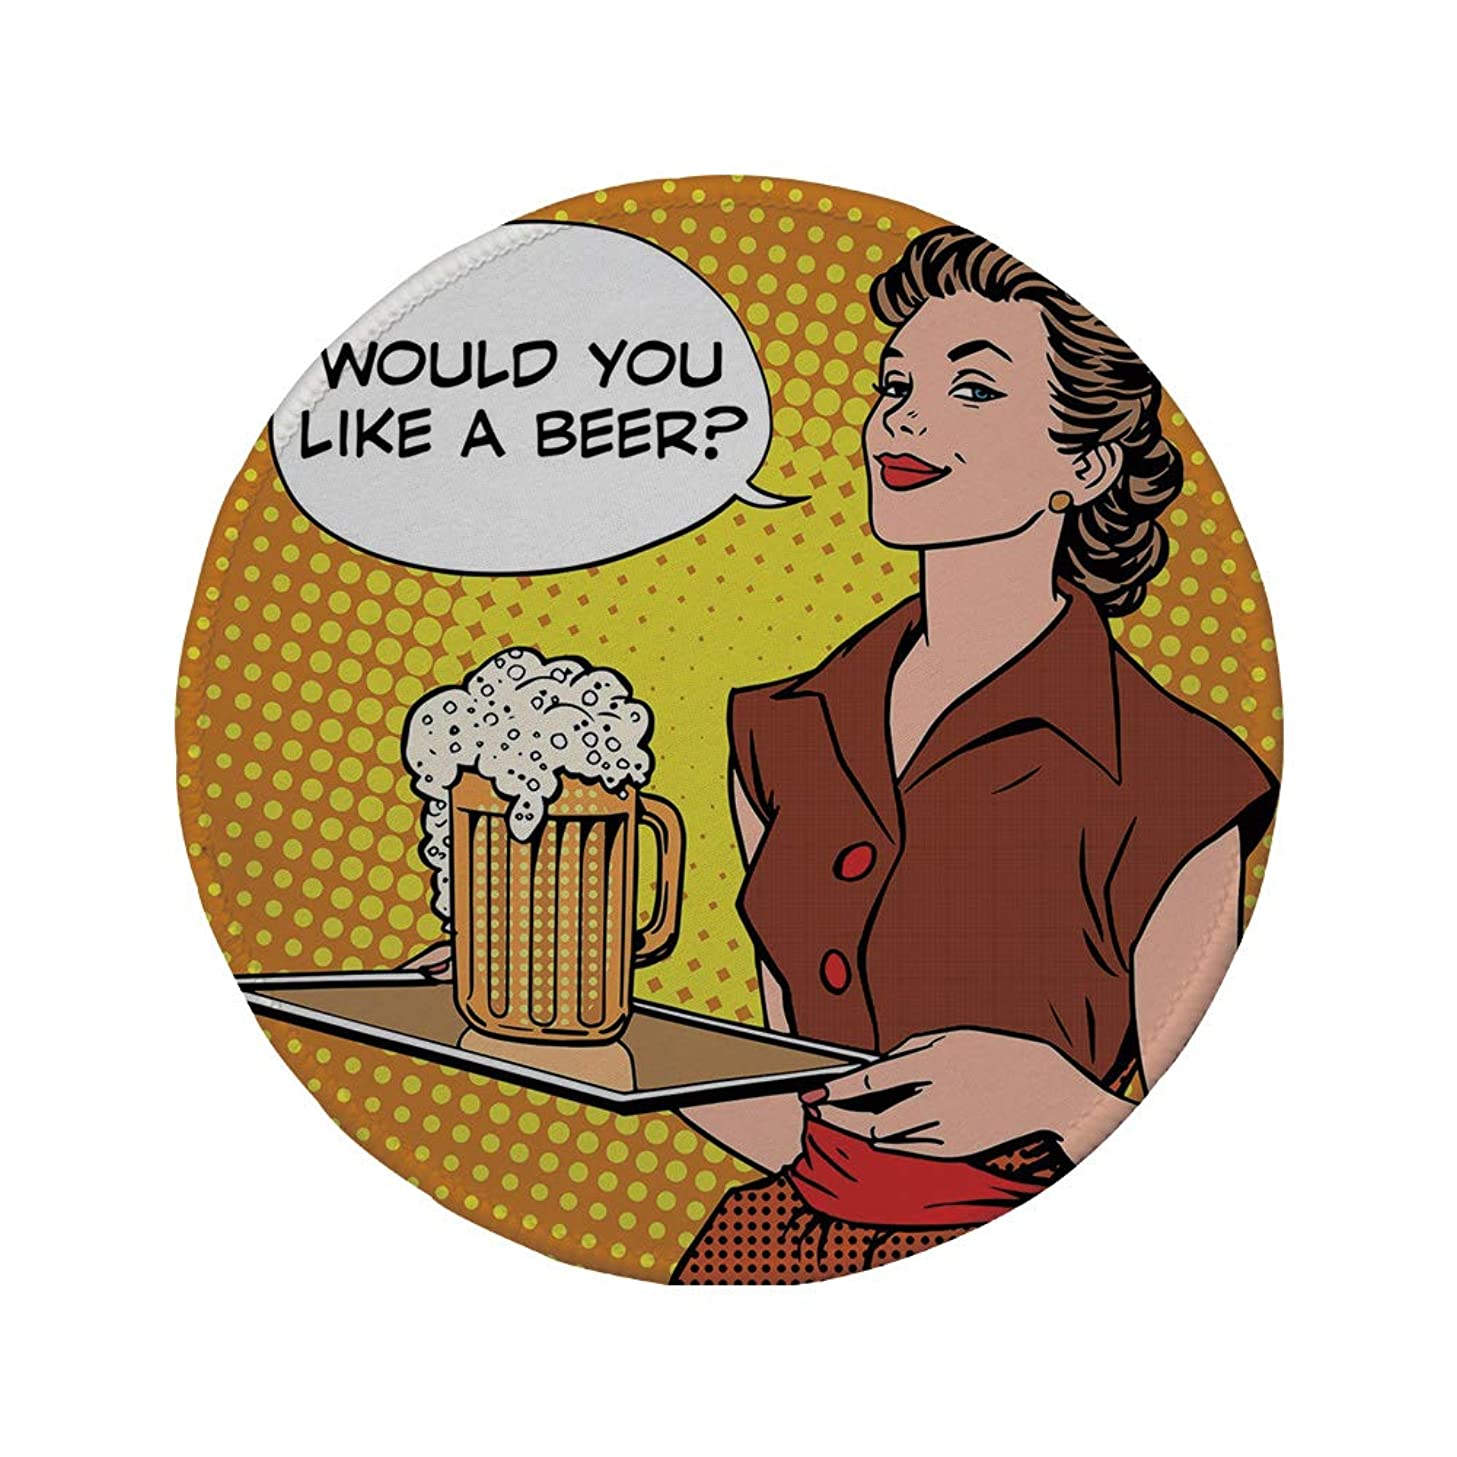 Non-Slip Rubber Round Mouse Pad,Man Cave Decor,The Waitress with Tray Saying Would You Like a Beer Comics Pop Art Retro Decorative,Multicolor,11.8